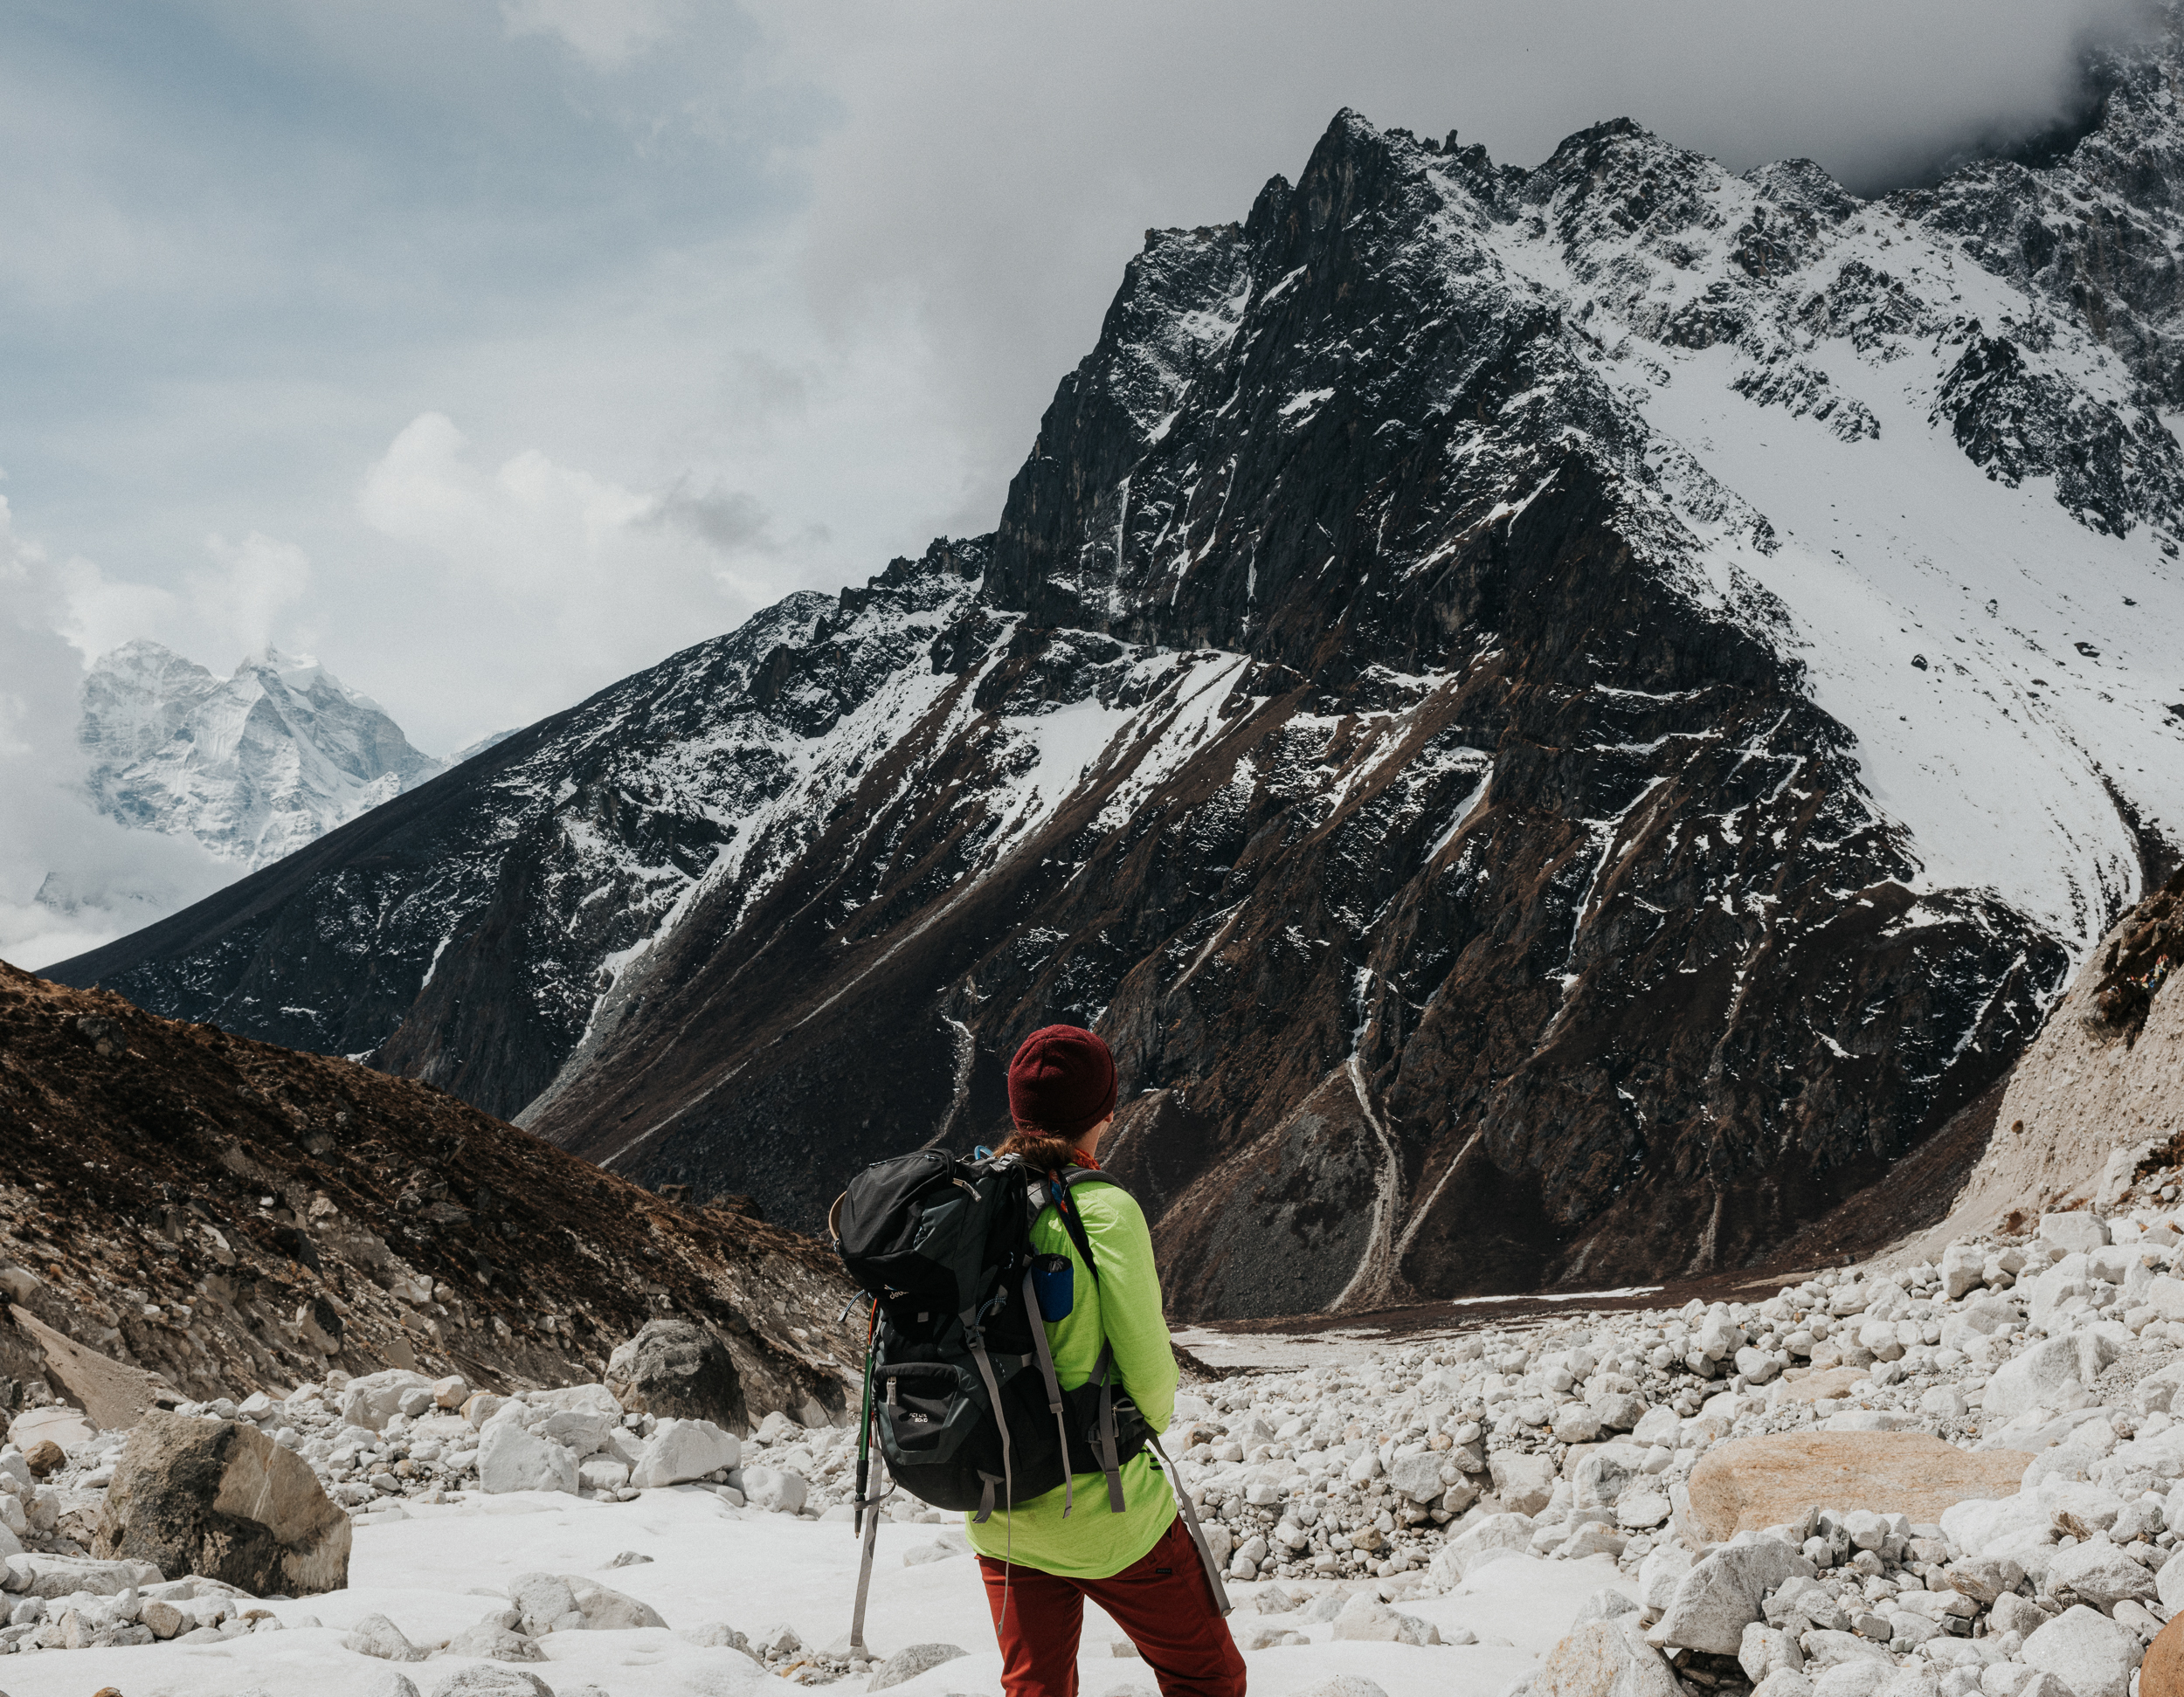 Nepal_EverestBaseCamp_2019_TaraShupe_Photography_DSC_4092.jpg